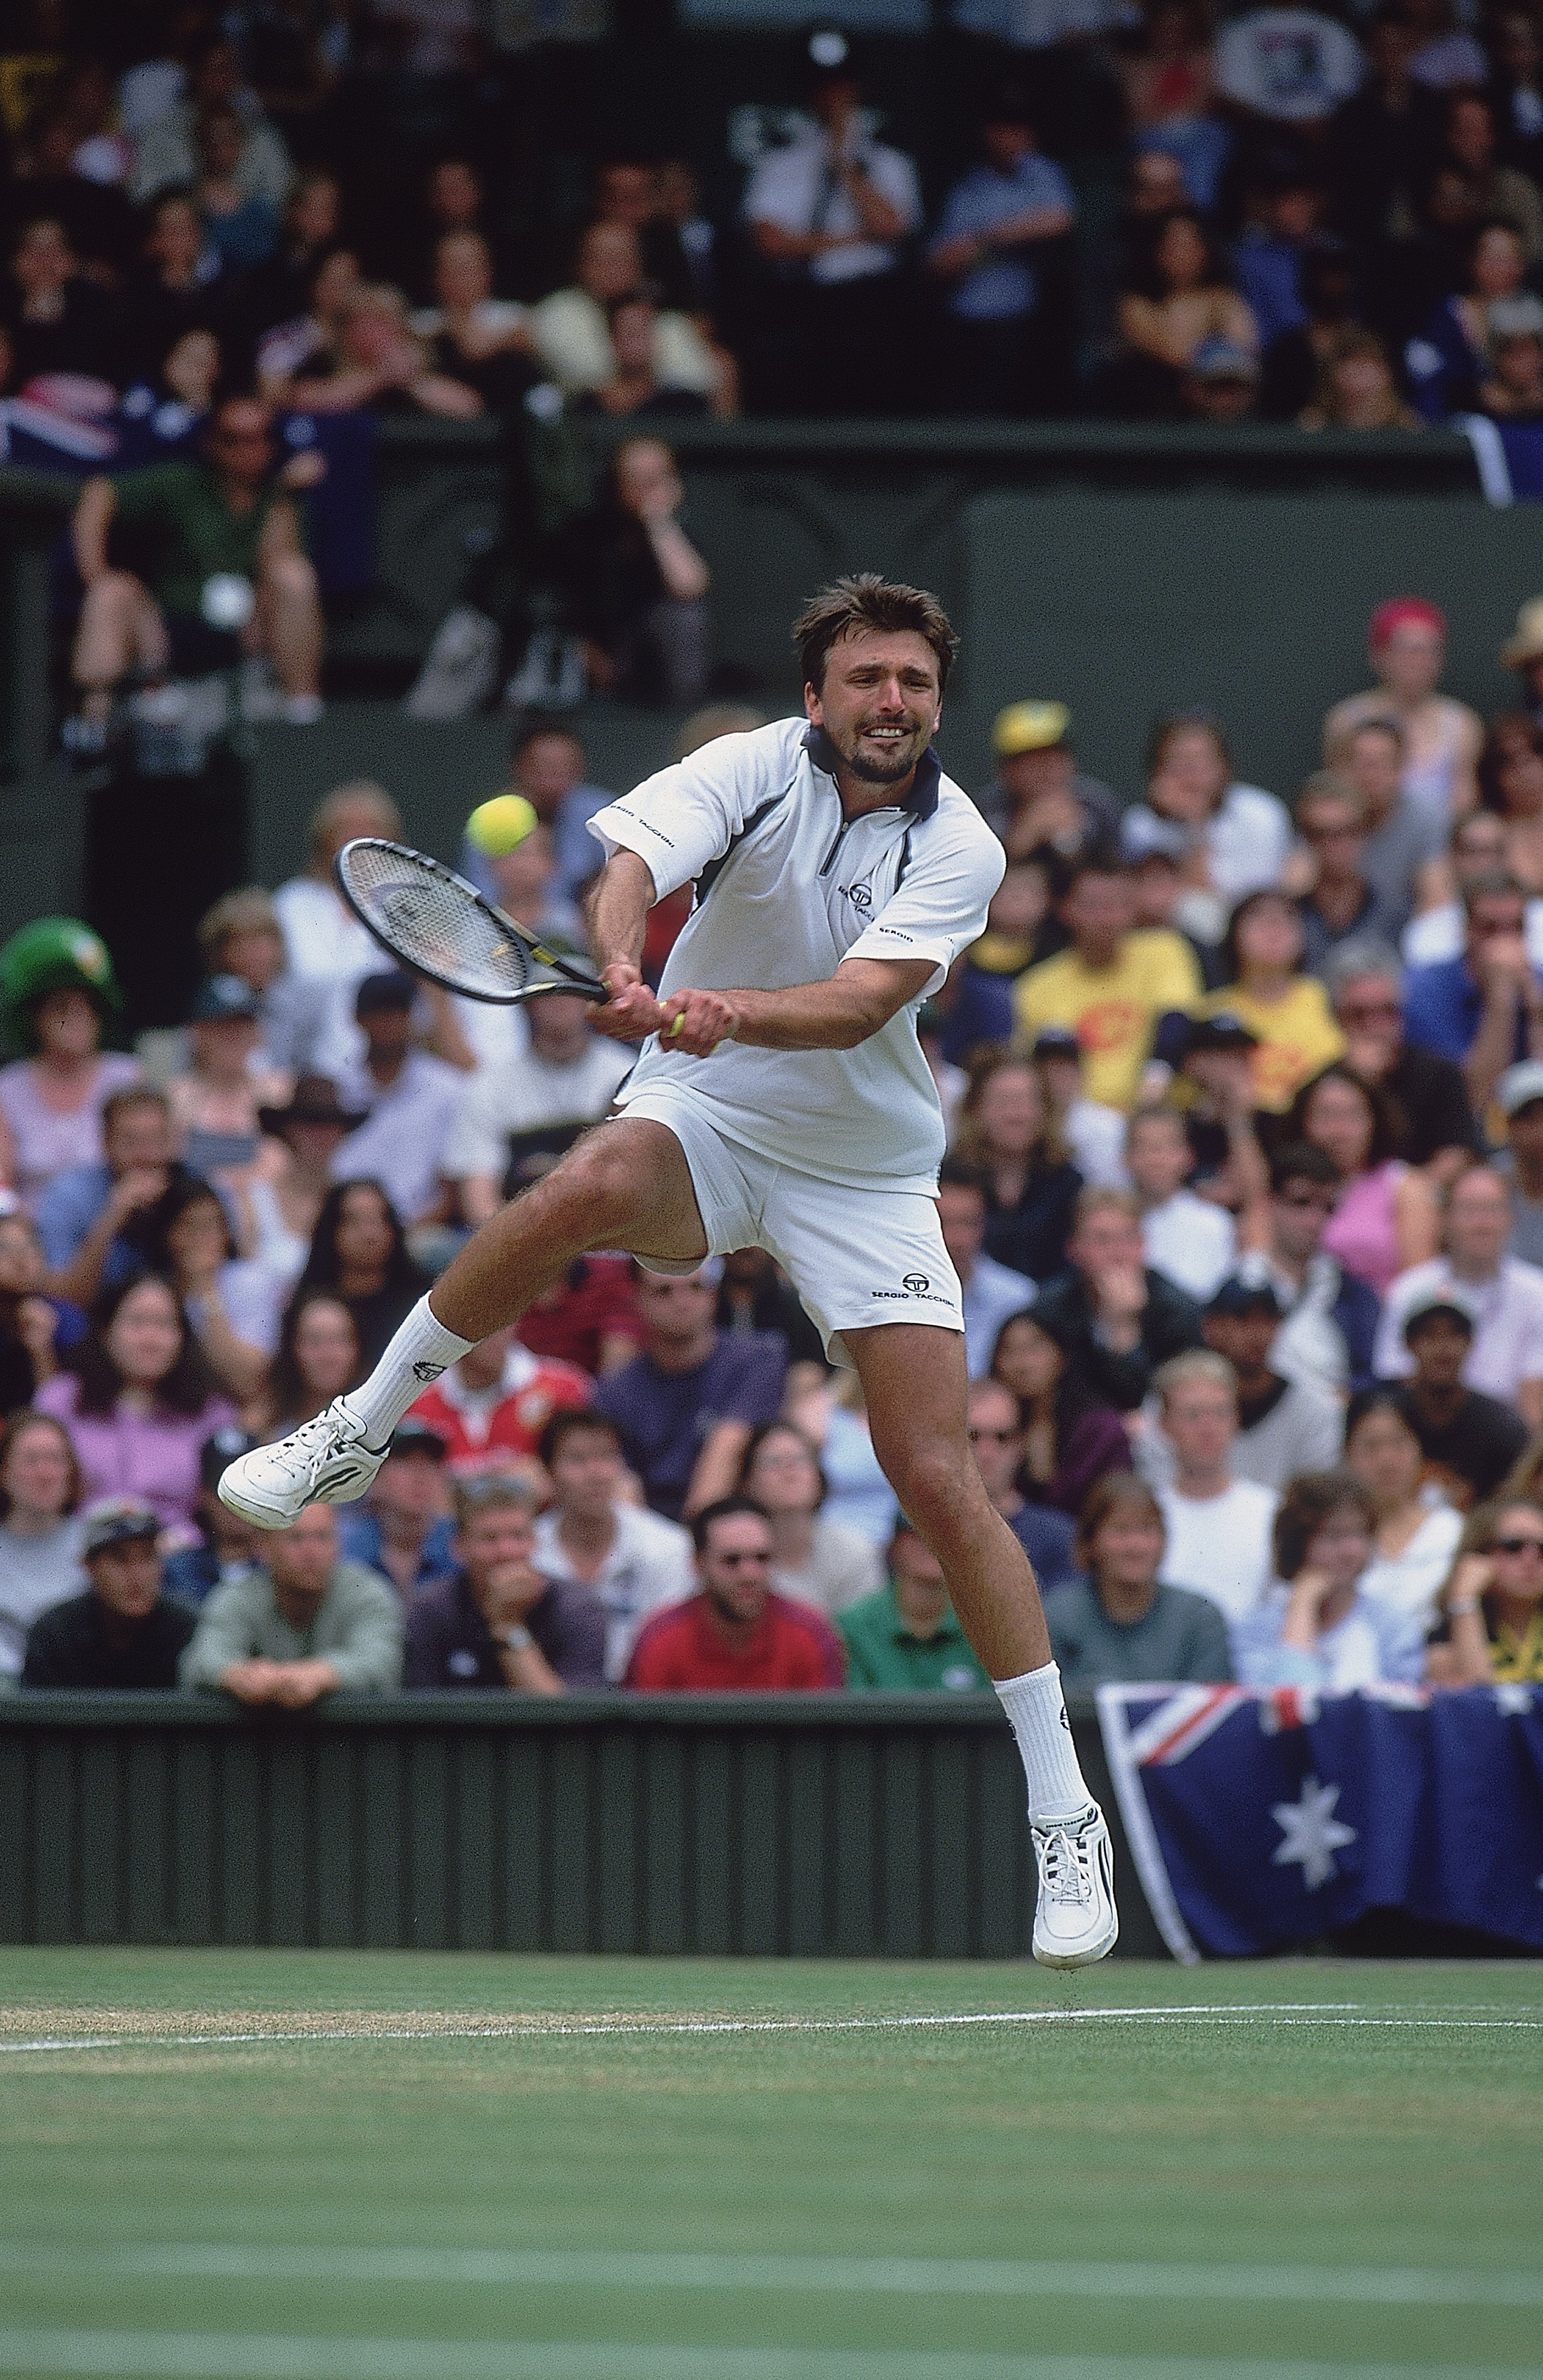 9 Jul 2001:  Goran Ivanisevic of Croatia in action during the men's final of the Wimbledon Lawn Tennis Championship held at the All England Lawn Tennis and Croquet Club, in Wimbledon, London. \ Mandatory Credit: Gary M Prior/Allsport